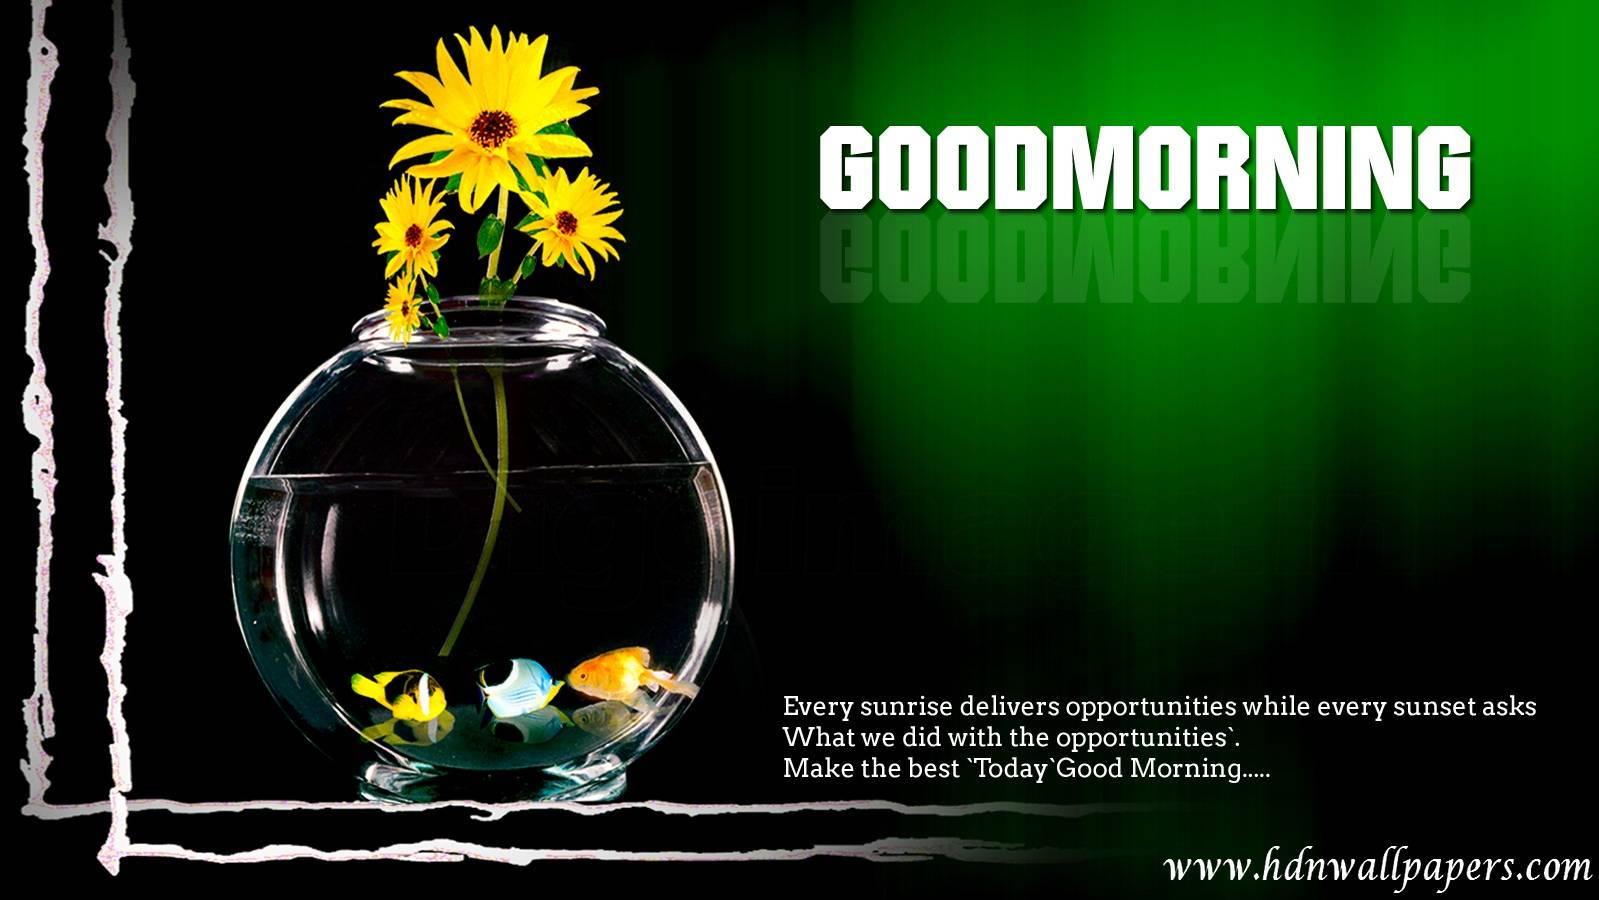 Good Morning New Wallpapers Free Download For Laptop